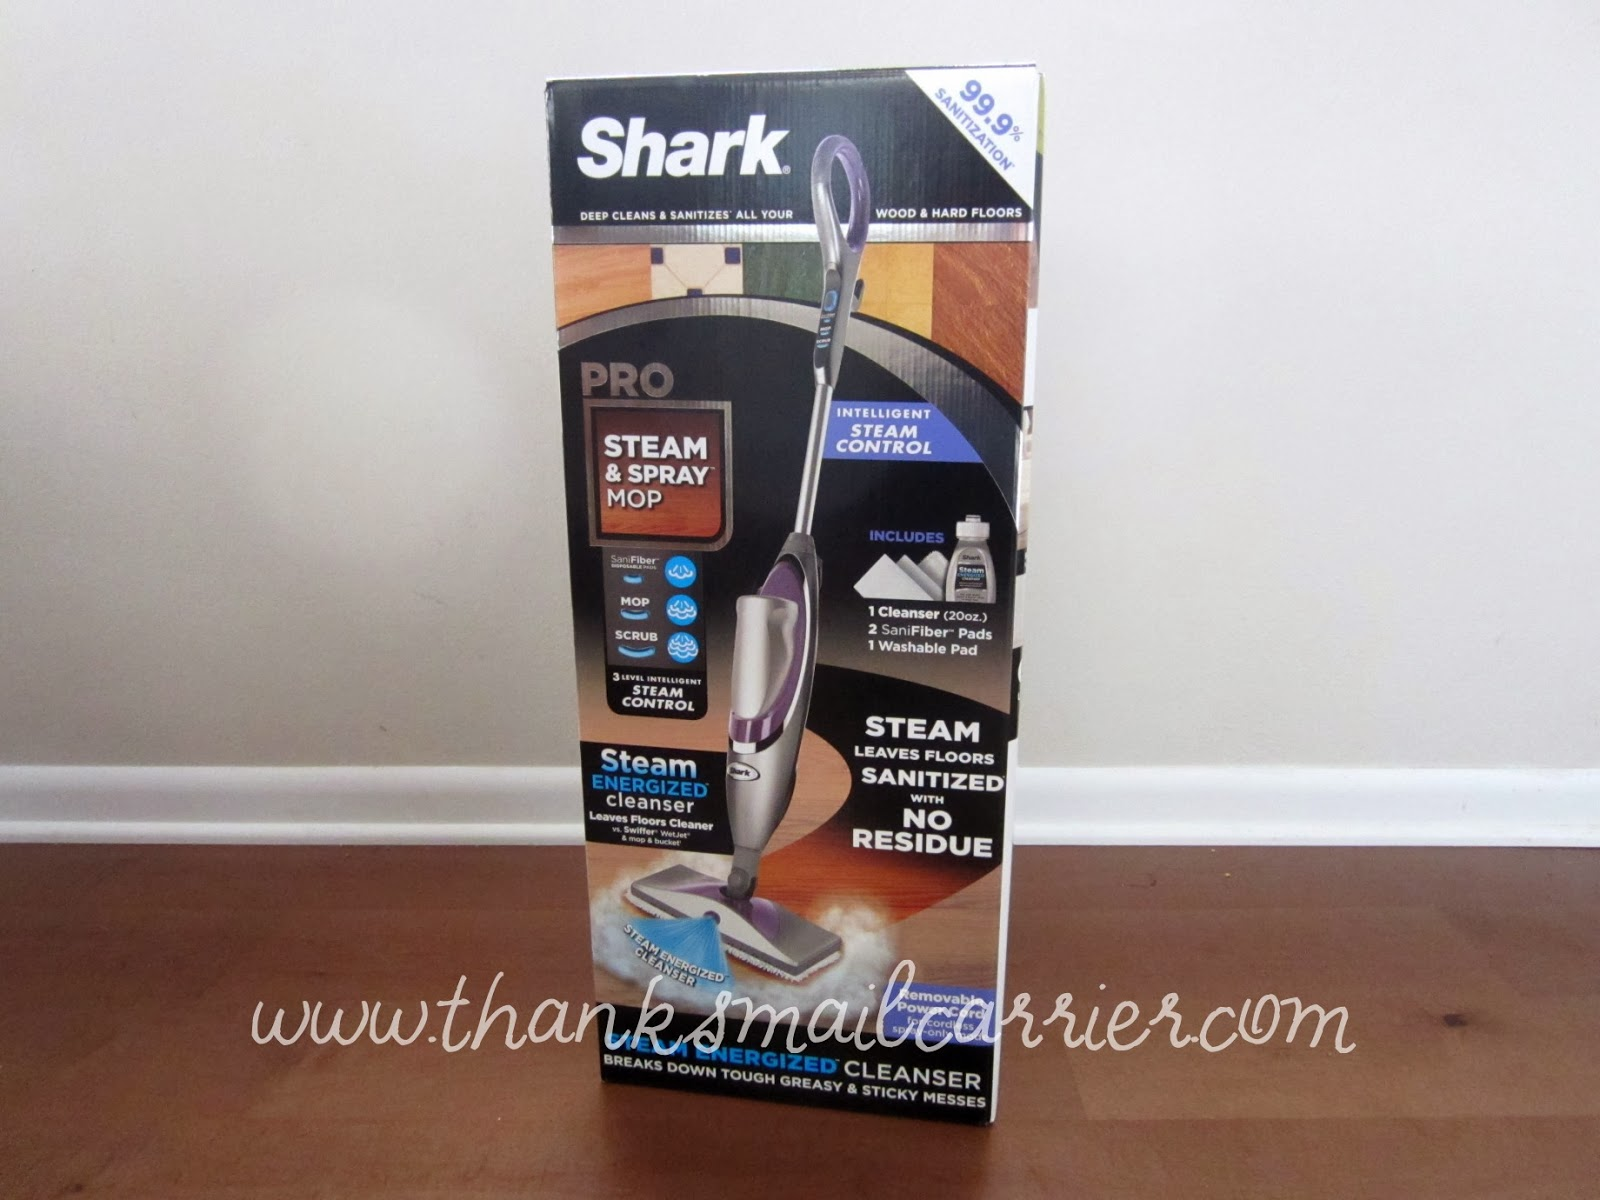 Shark spray mop